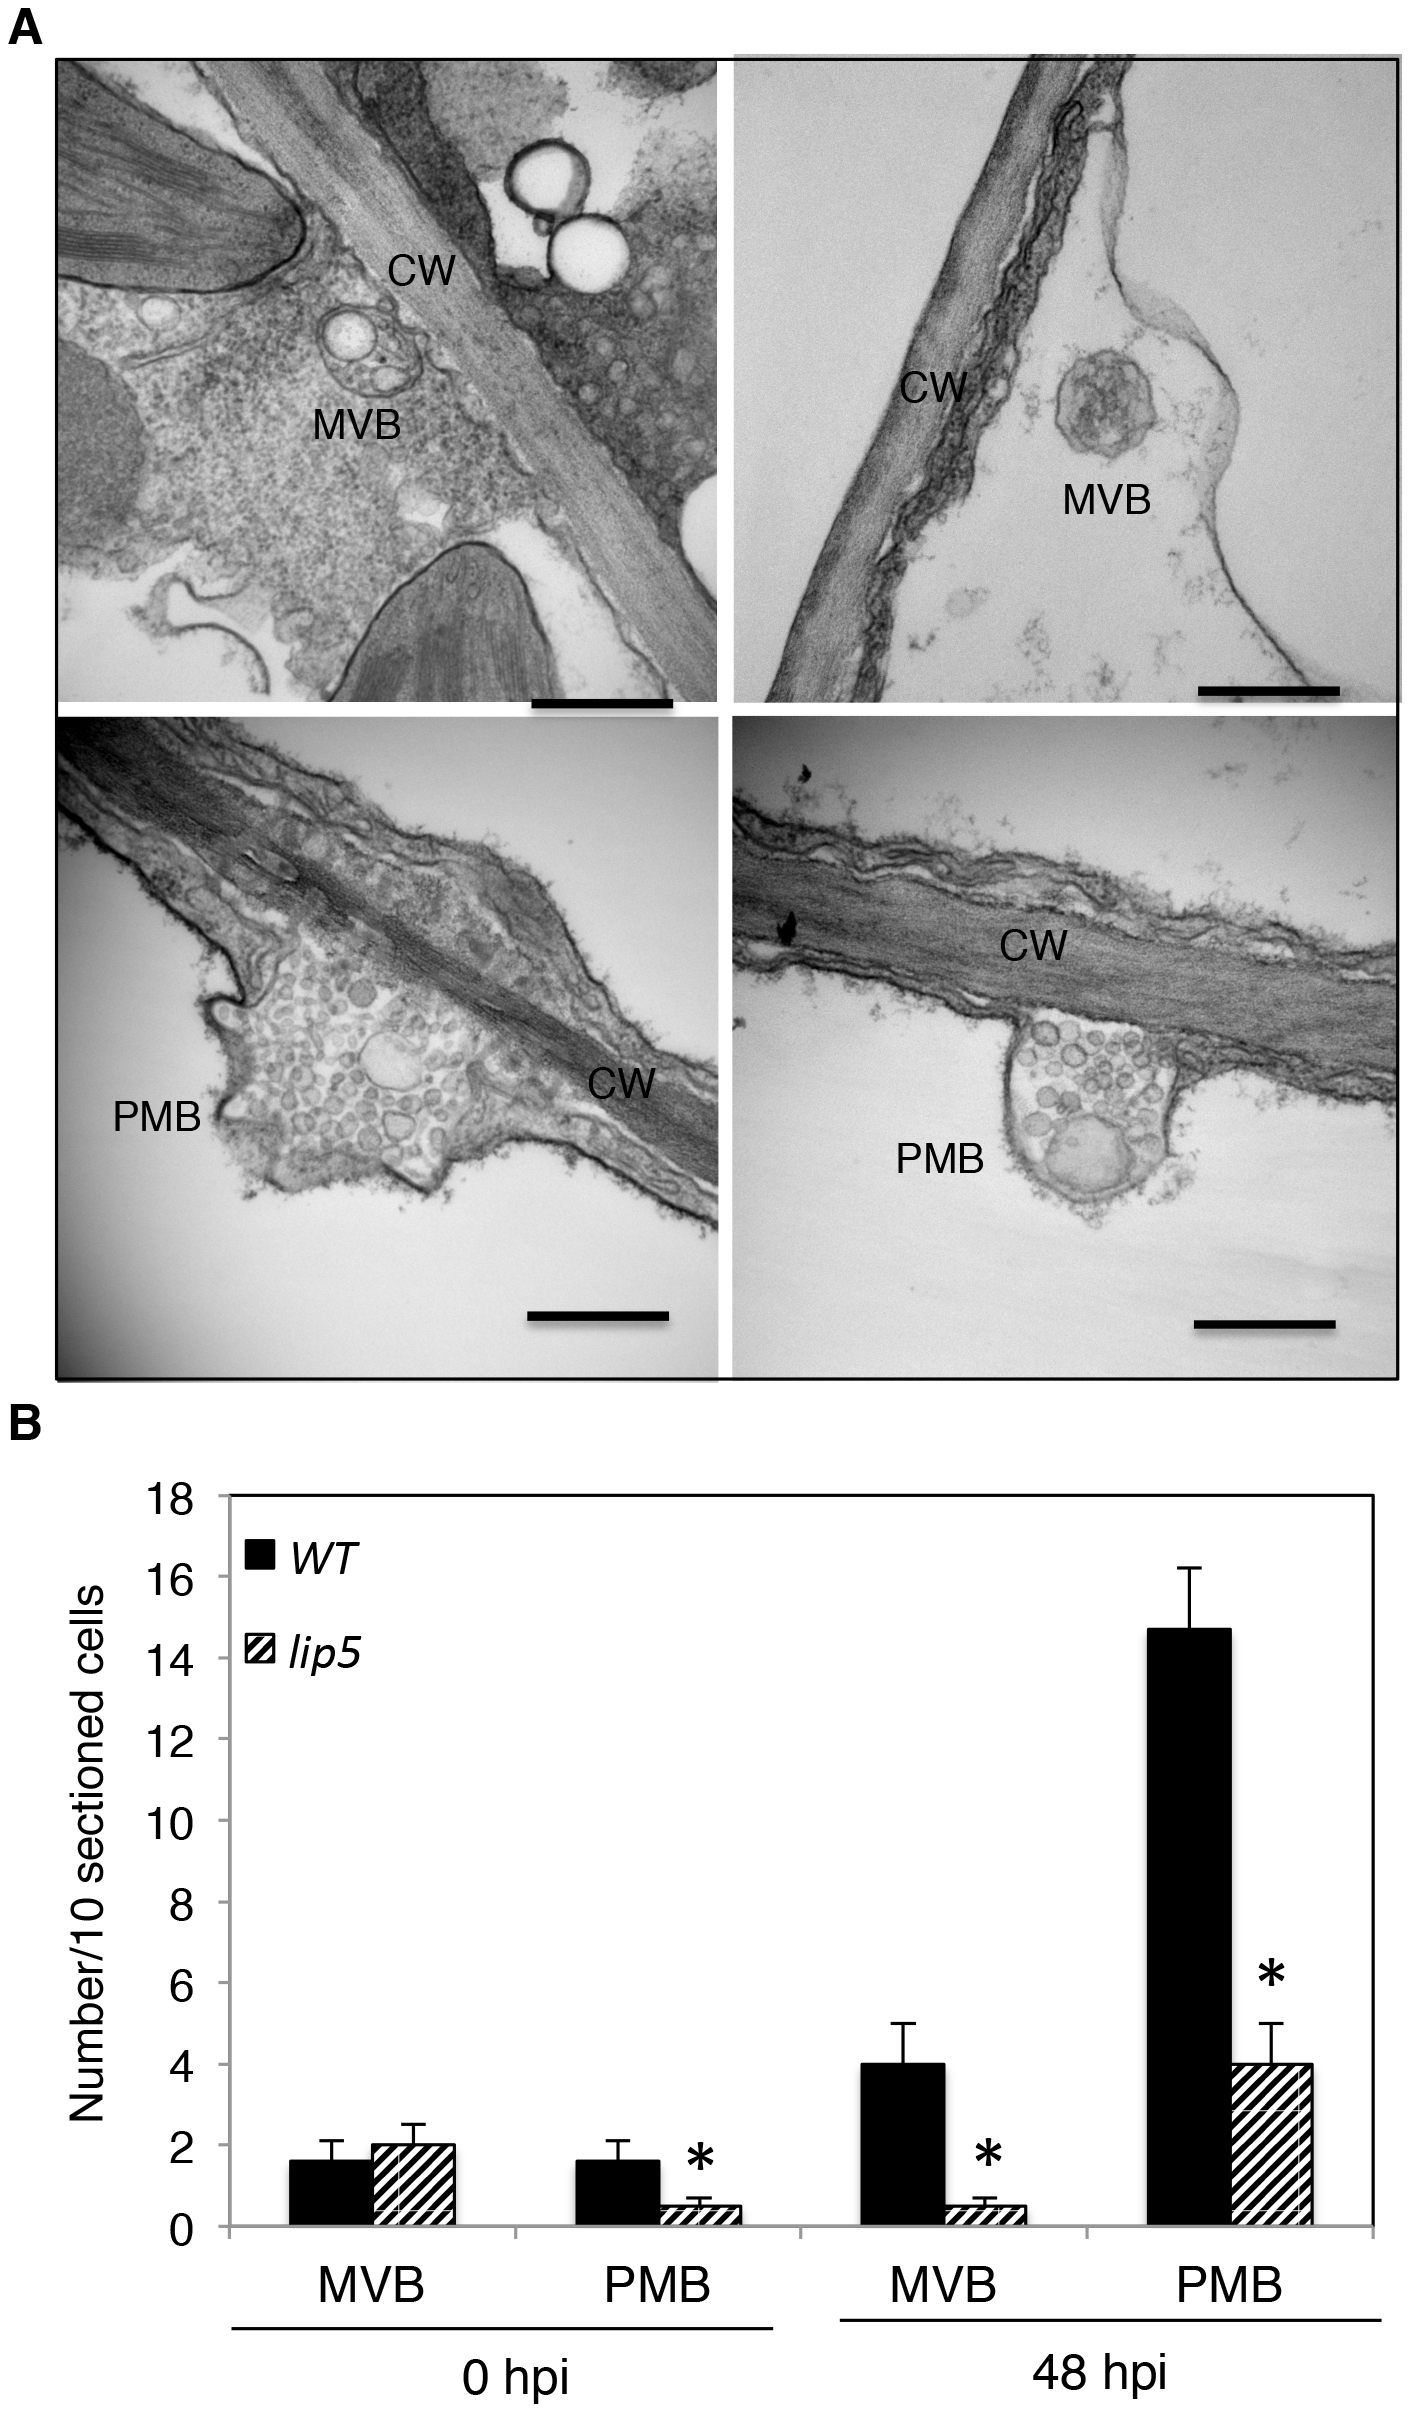 Pathogen-induced MVB and PMB formation.